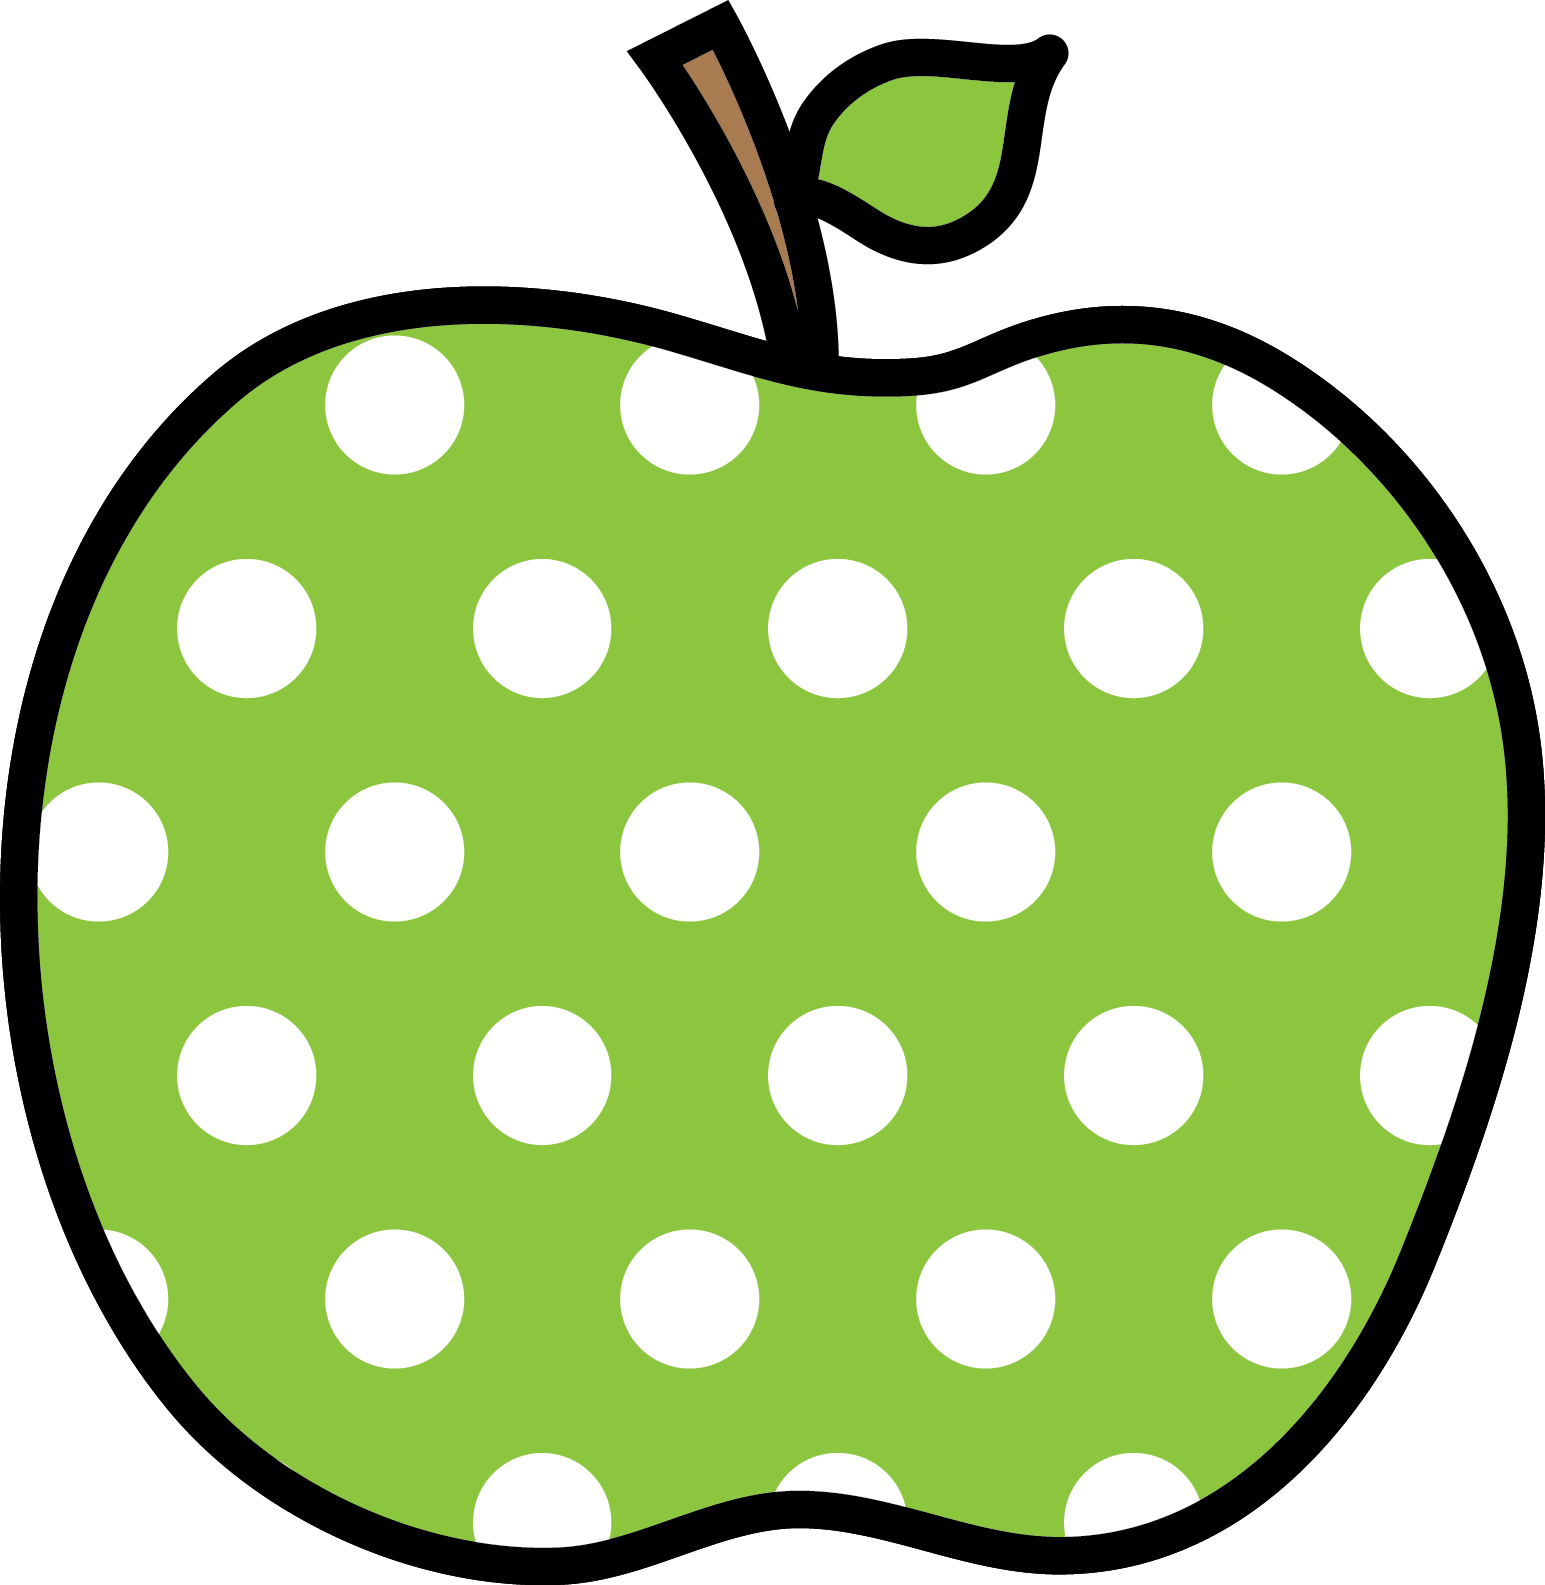 green polka dot apple